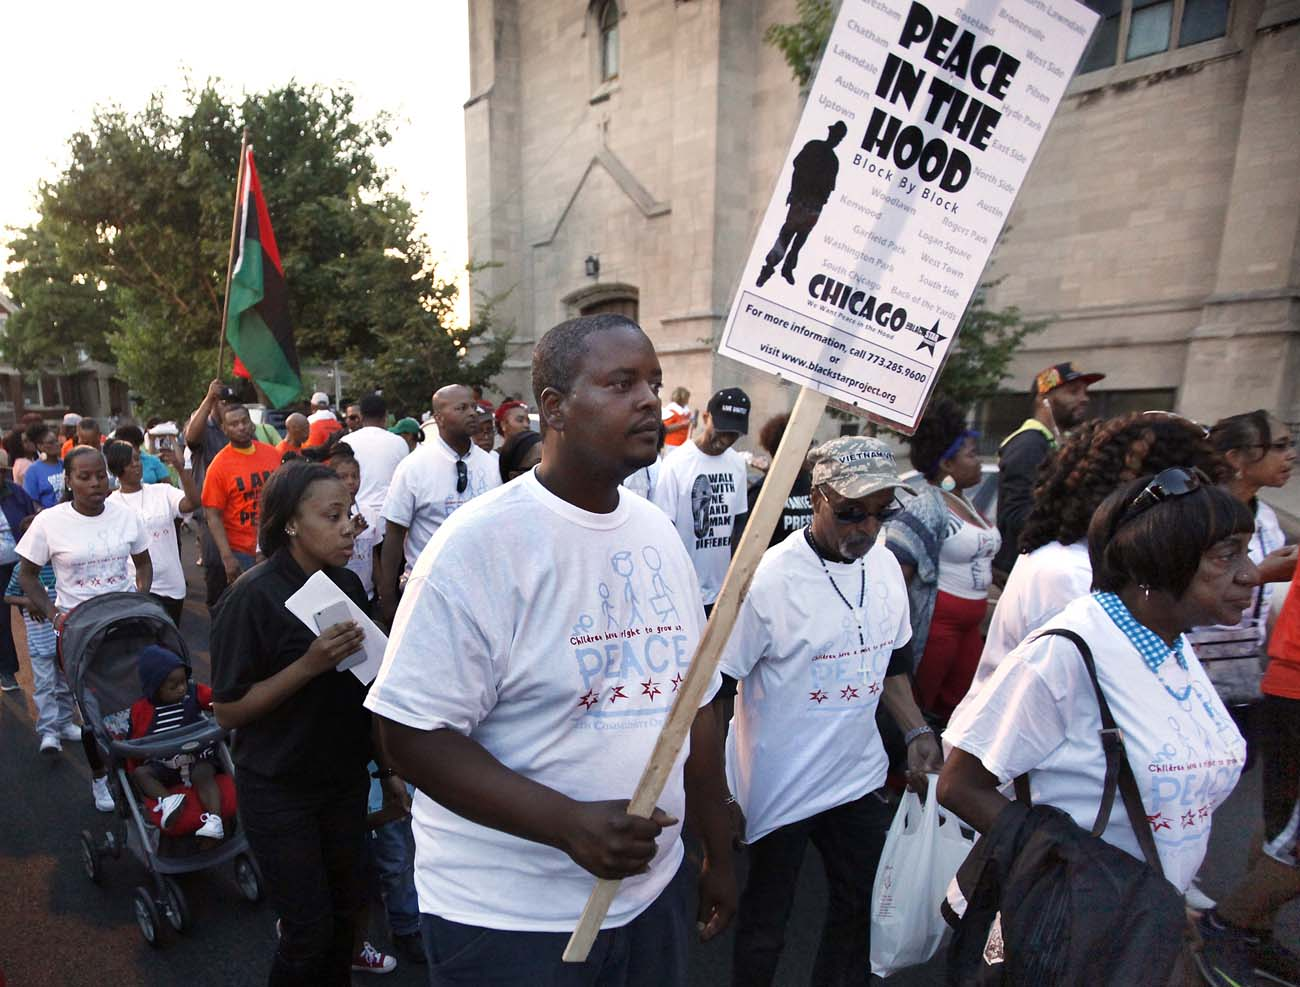 Participants walk during a march to kick-off the beginning of summer and call for an end to violence in their community June 17 in Chicago. The march followed a rally held in front of St. Sabina Church. (CNS photo/Karen Callaway, Catholic New World)